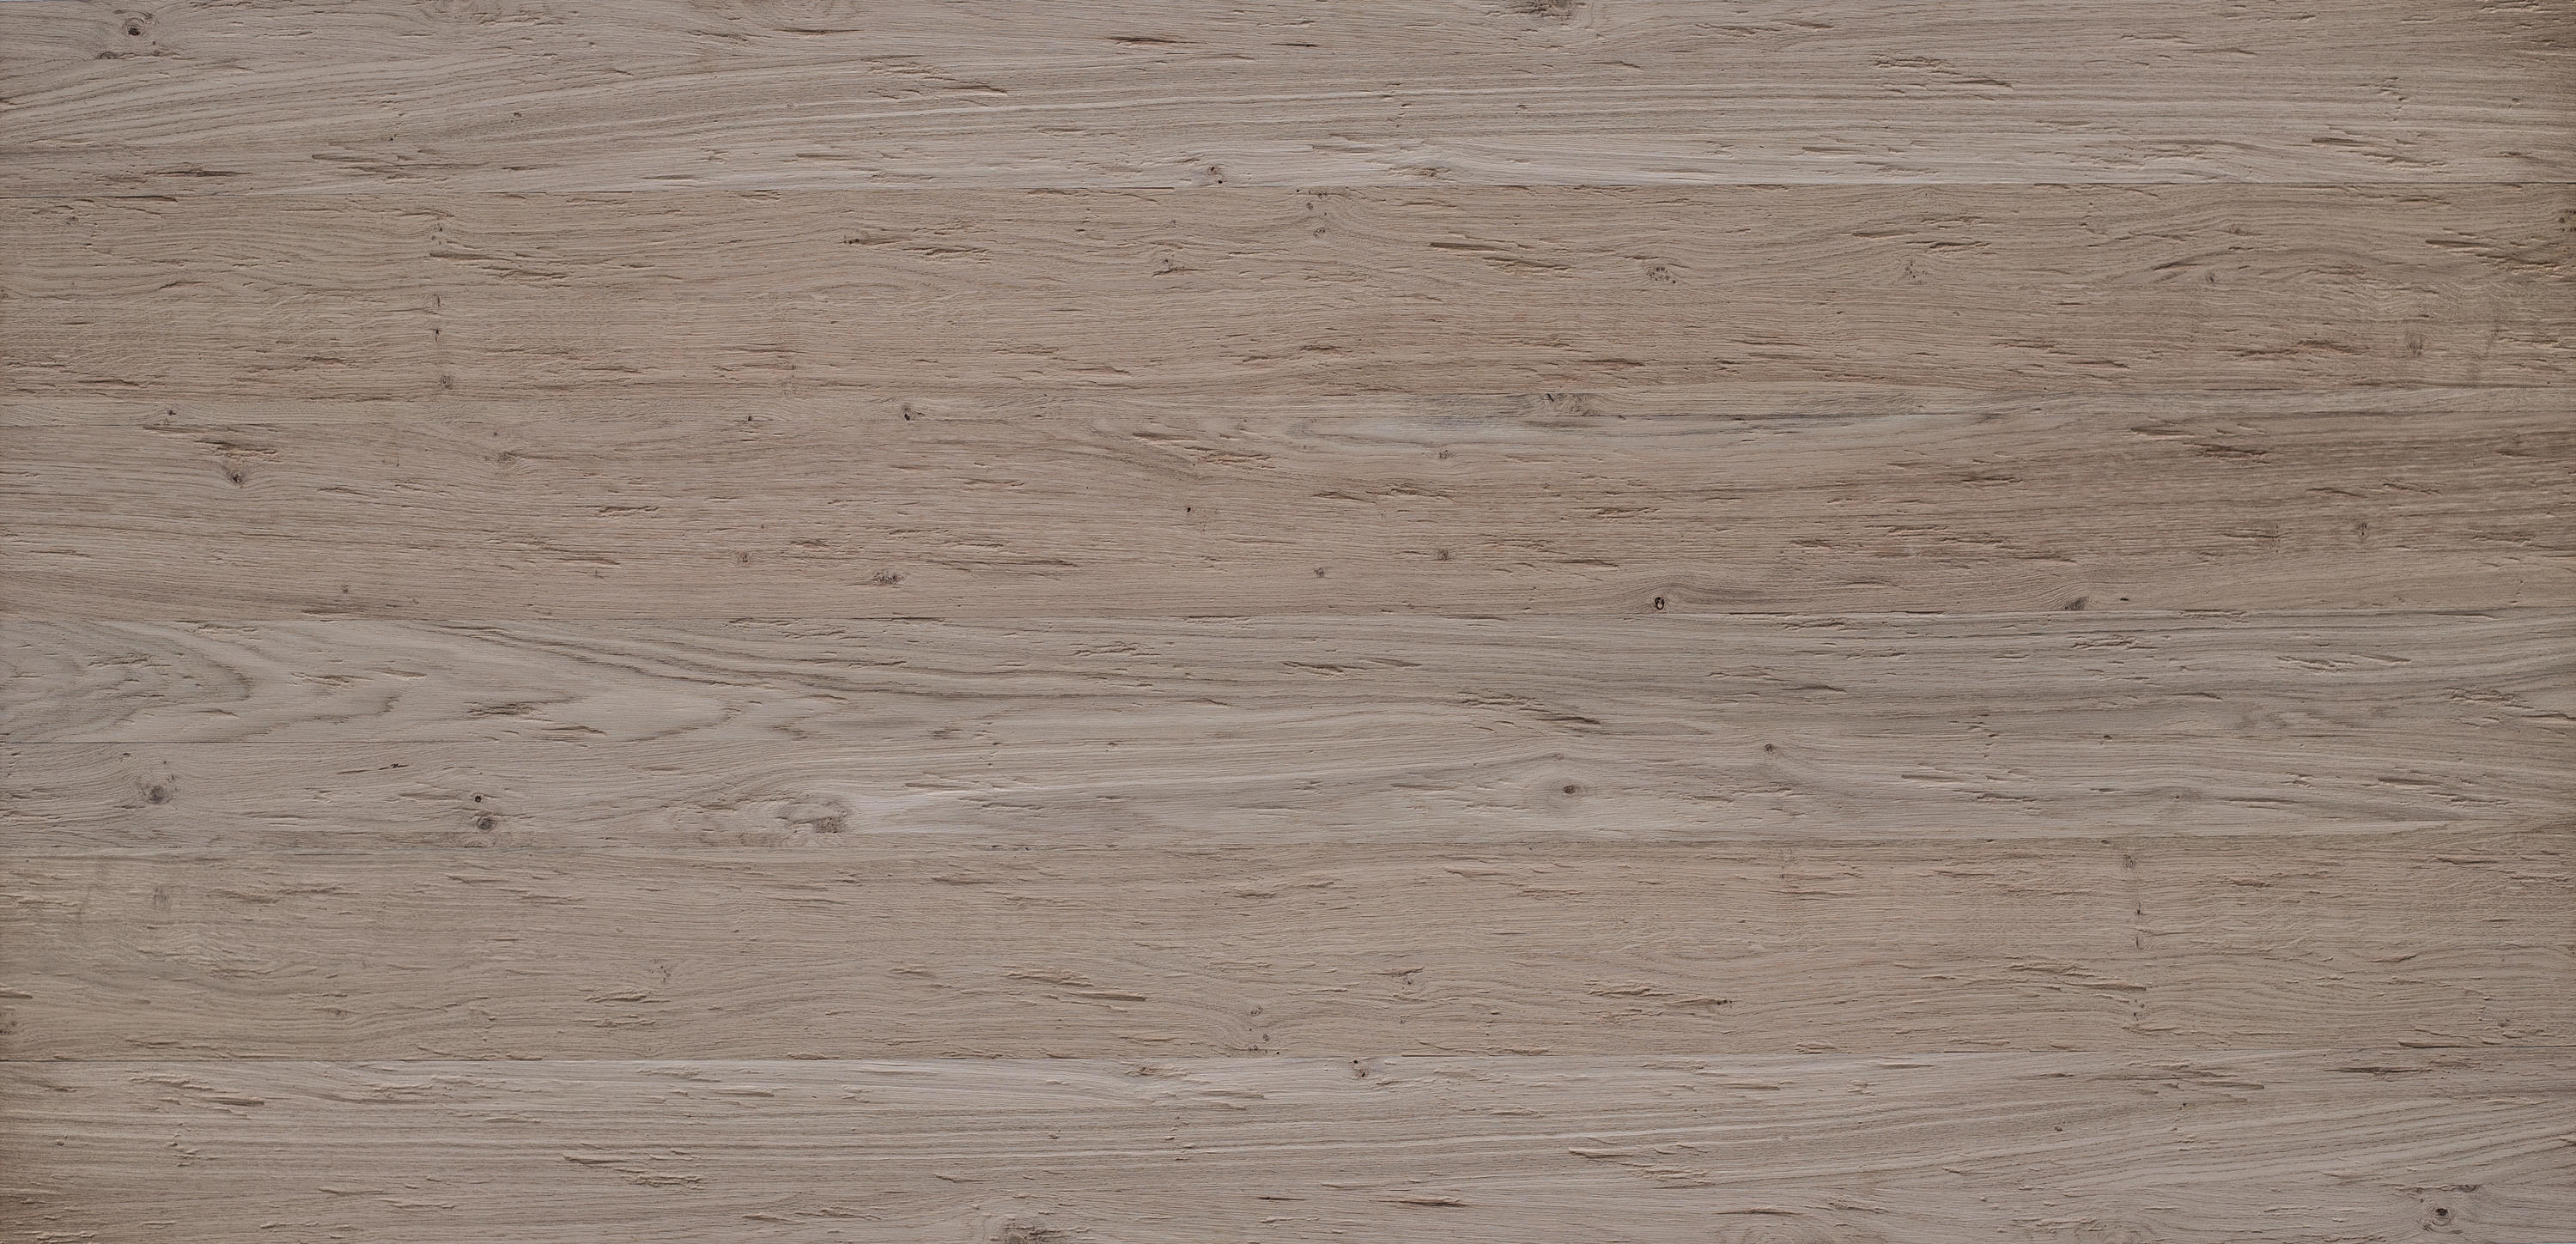 Rustica 174 Chopped Beam Oak Natural Wood Panels From